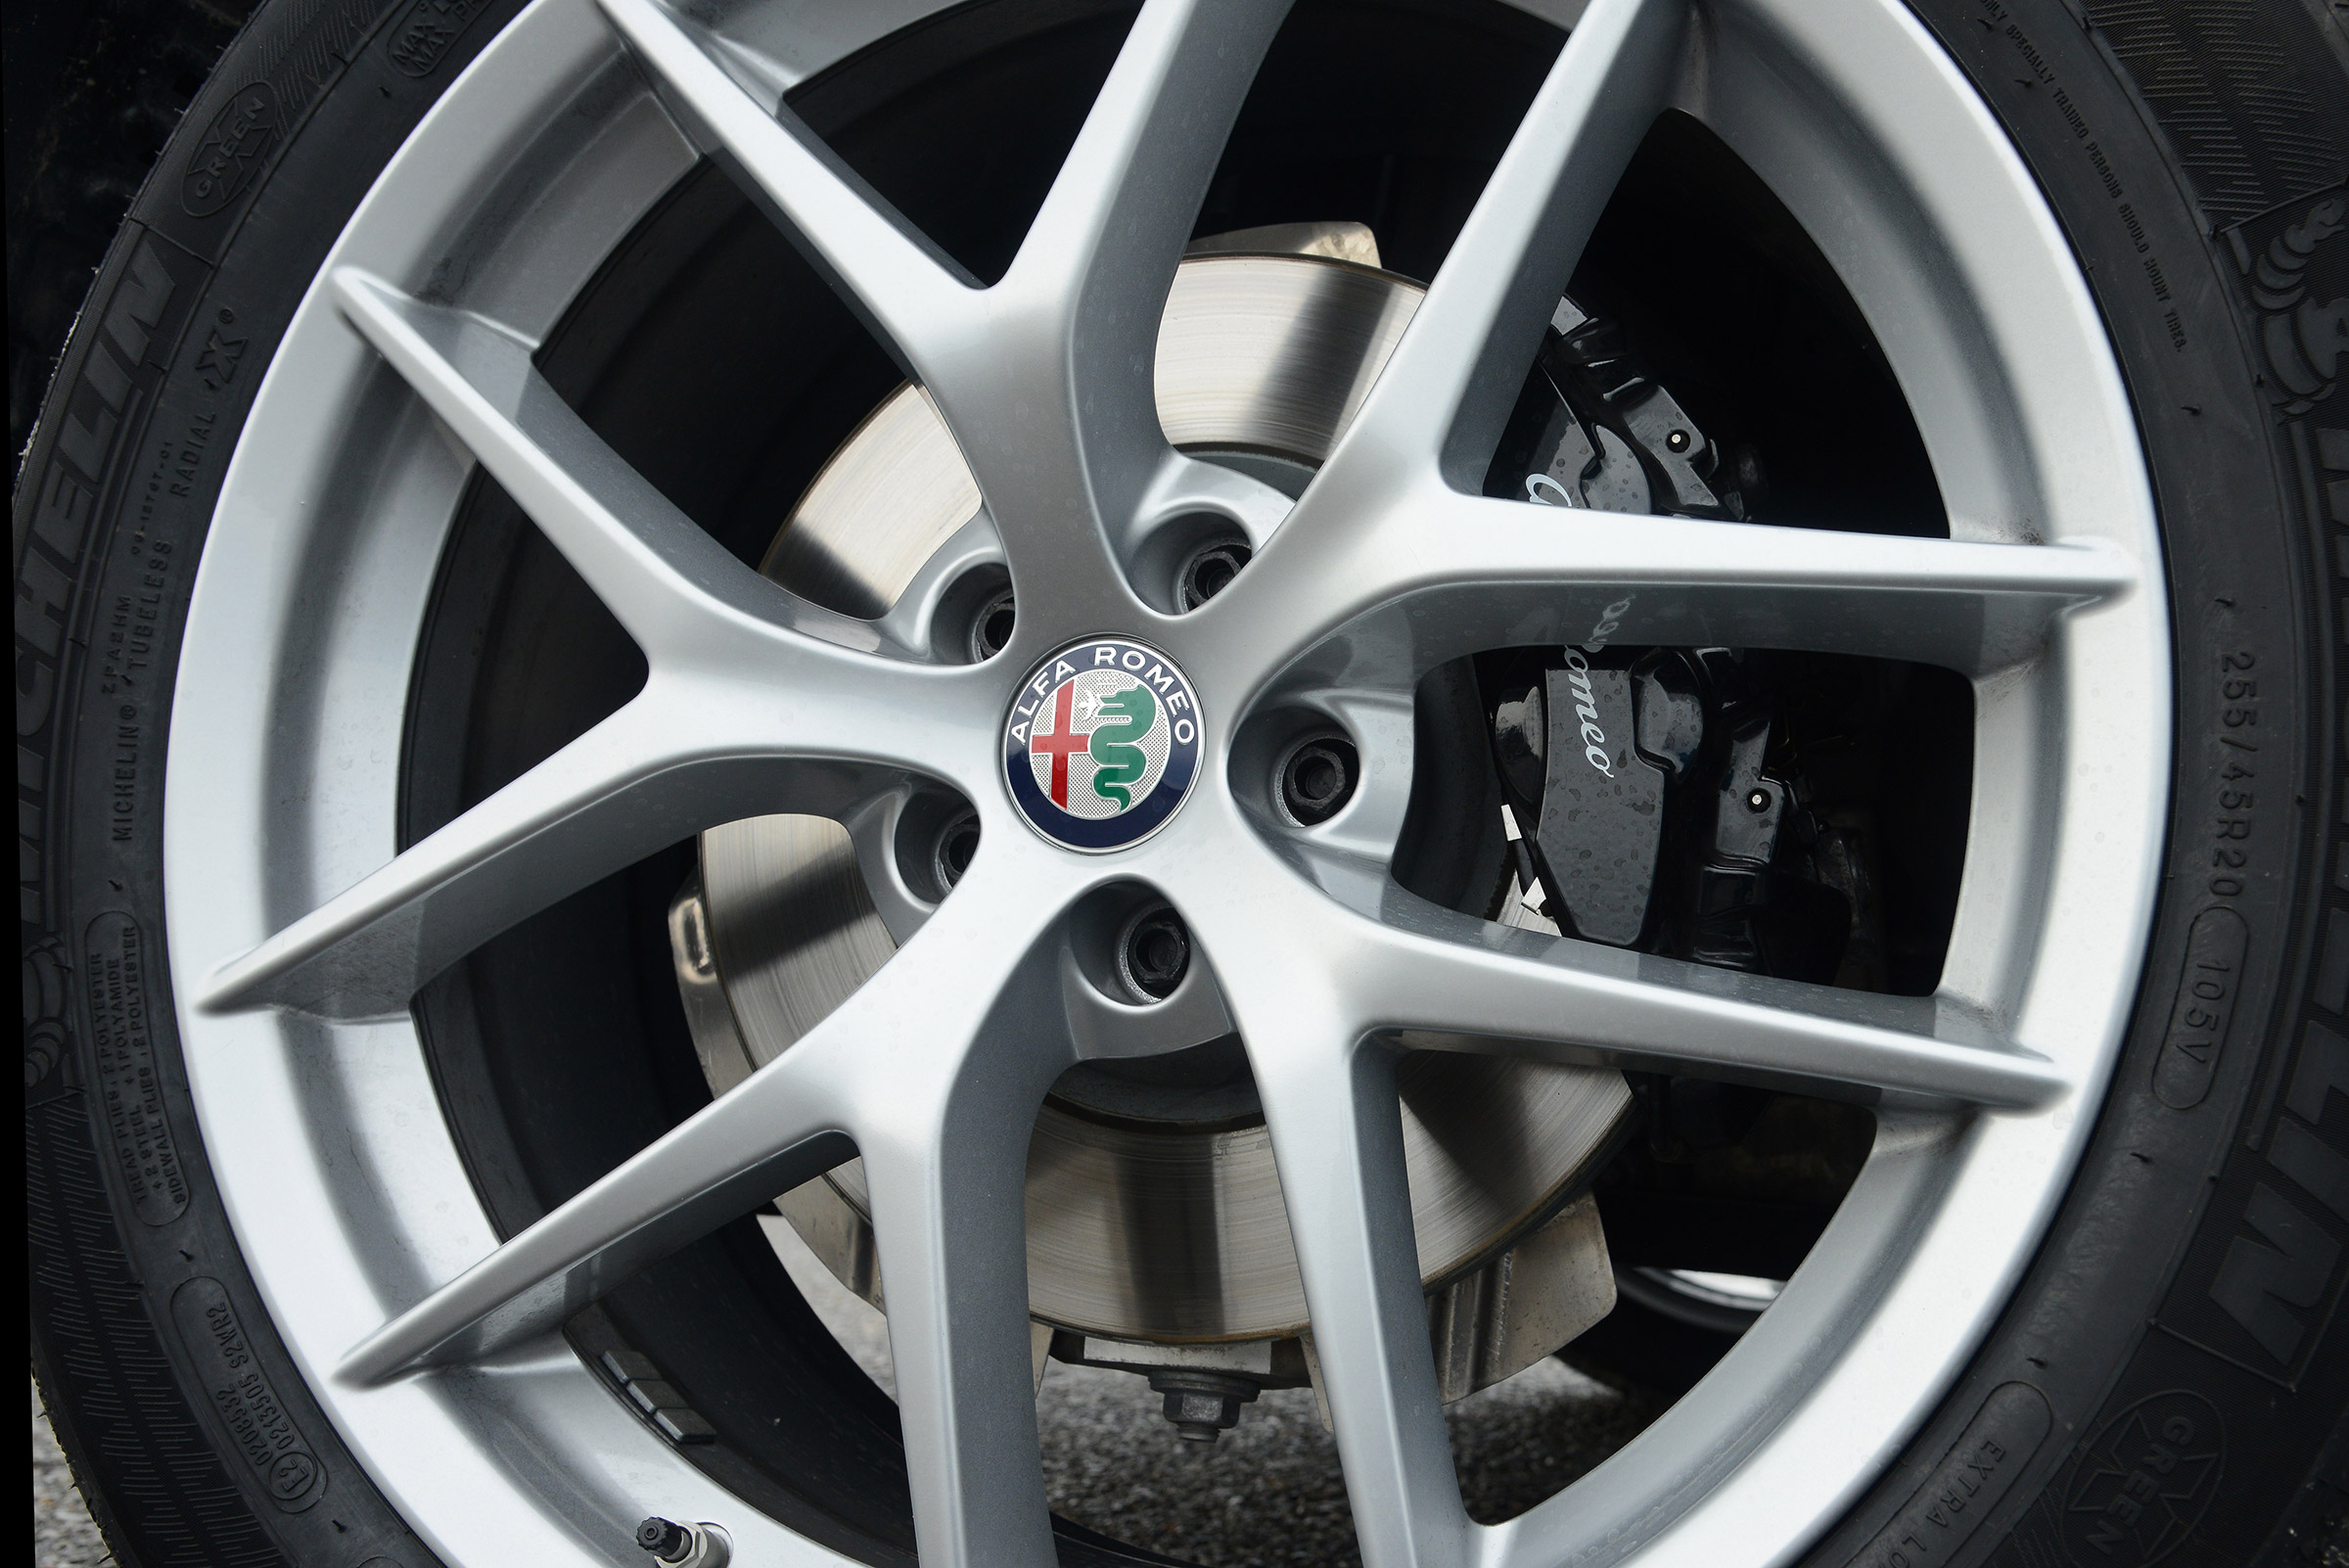 2017 Alfa Romeo Stelvio Exterior View Wheel Trim (Photo 8 of 23)